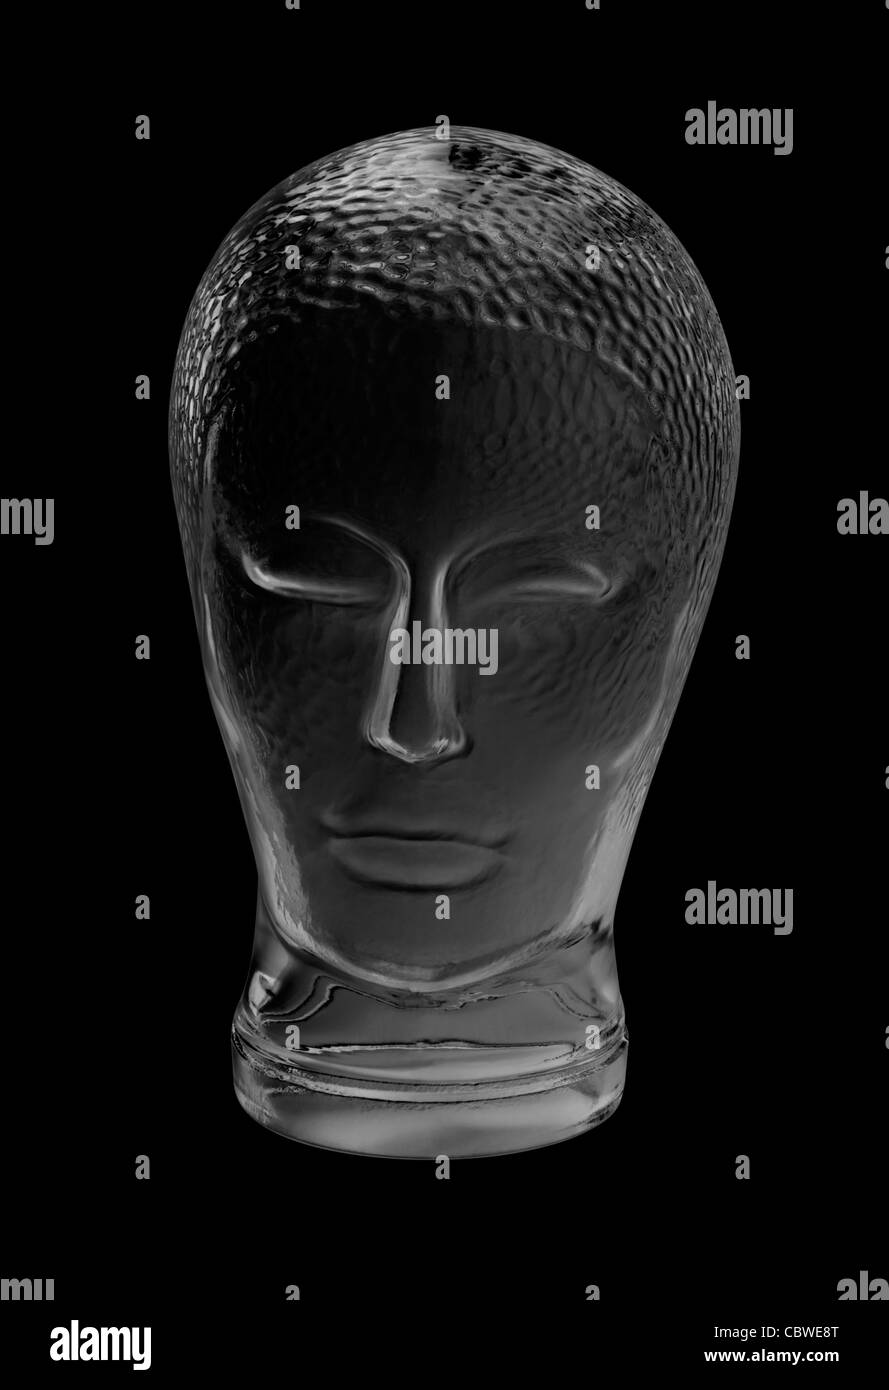 human head made of glass in black back - Stock Image